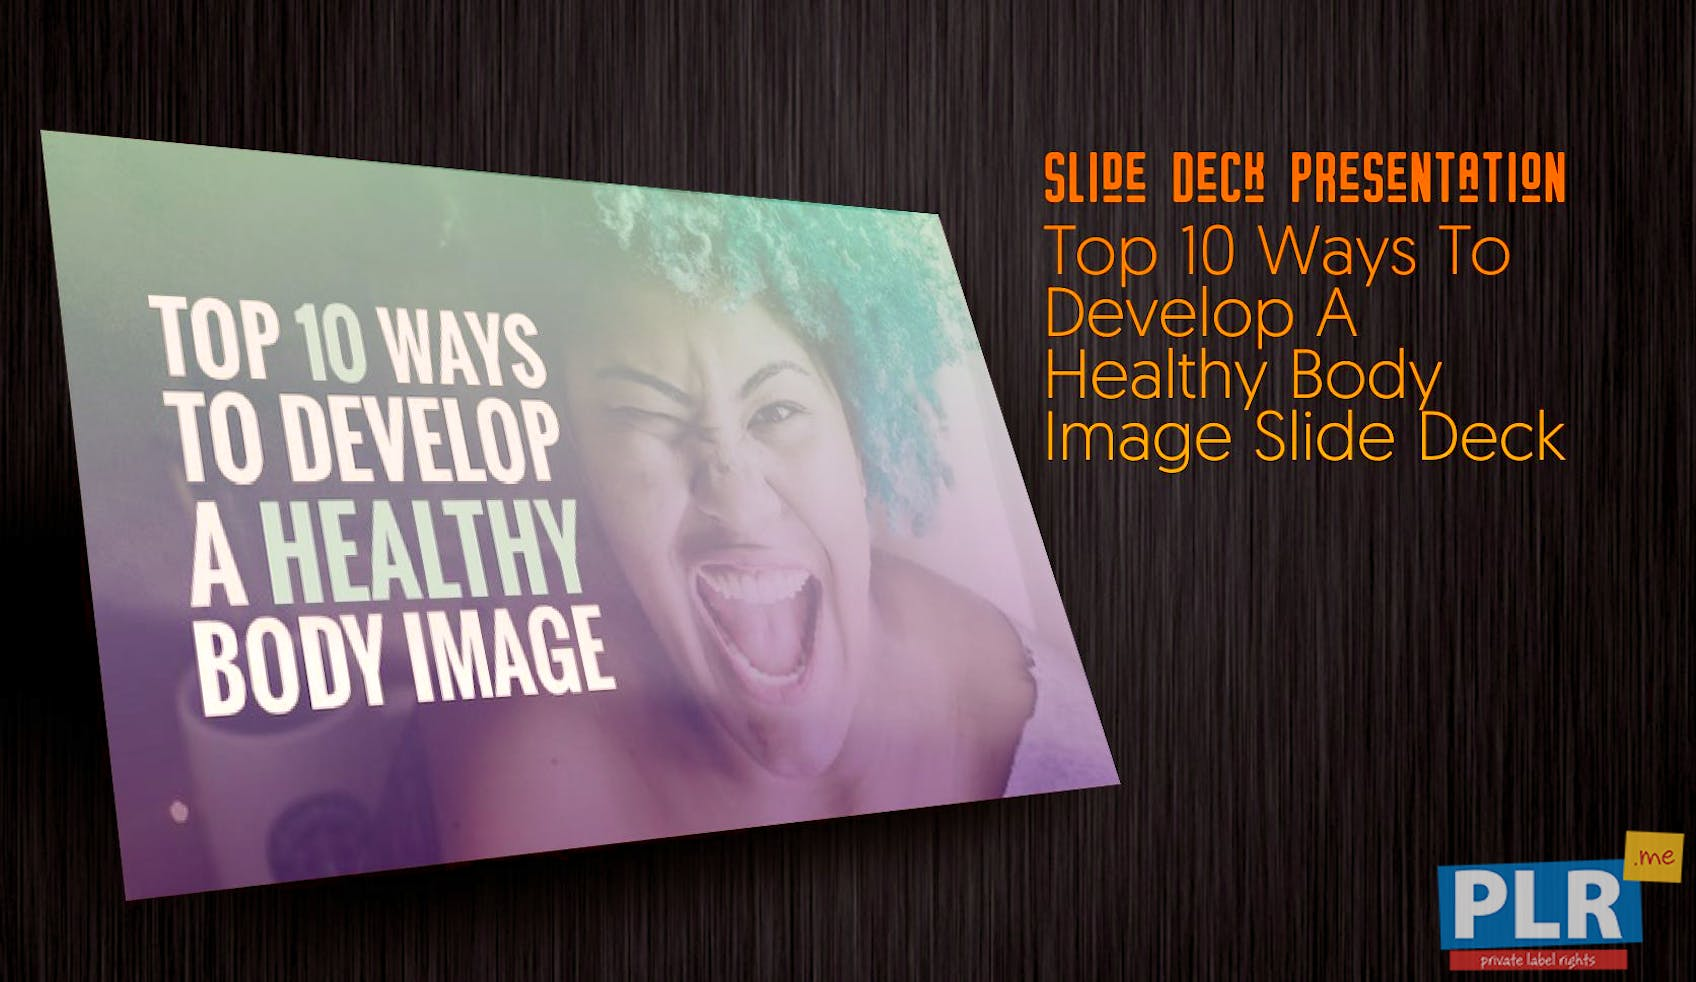 Top 10 Ways To Develop A Healthy Body Image Slide Deck